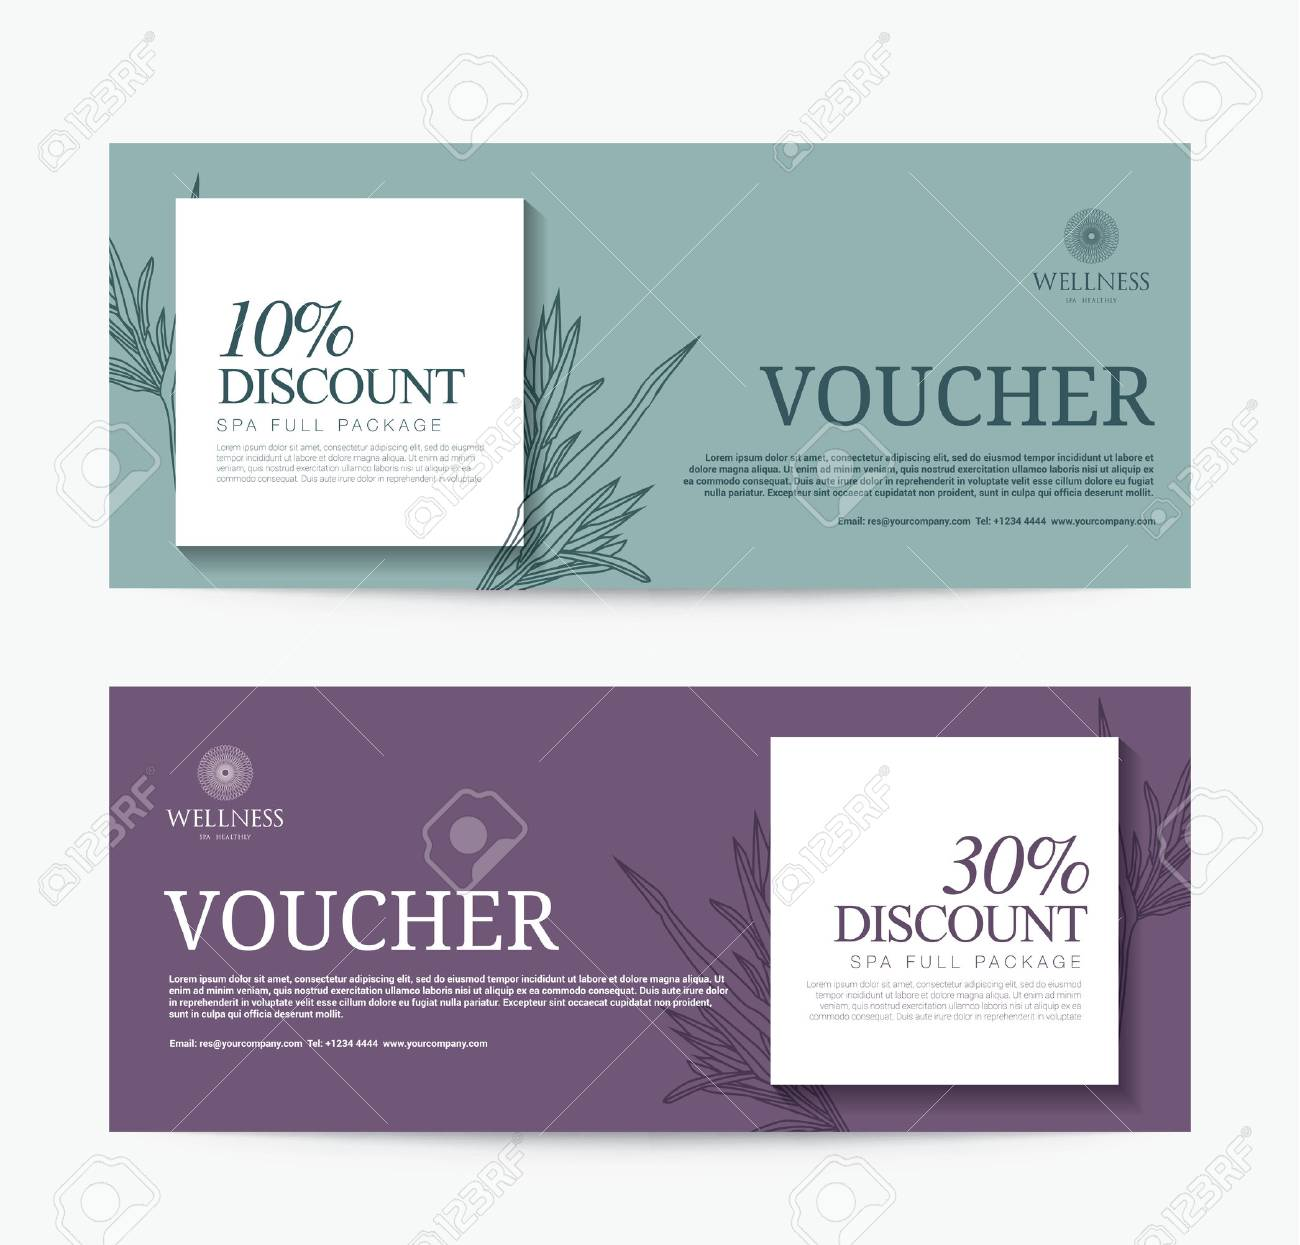 Fitness gift certificate template wedding planner resume make a spa gift certificate template free gallery templates example 71133822 gift voucher template for spa hotel resort xflitez Image collections